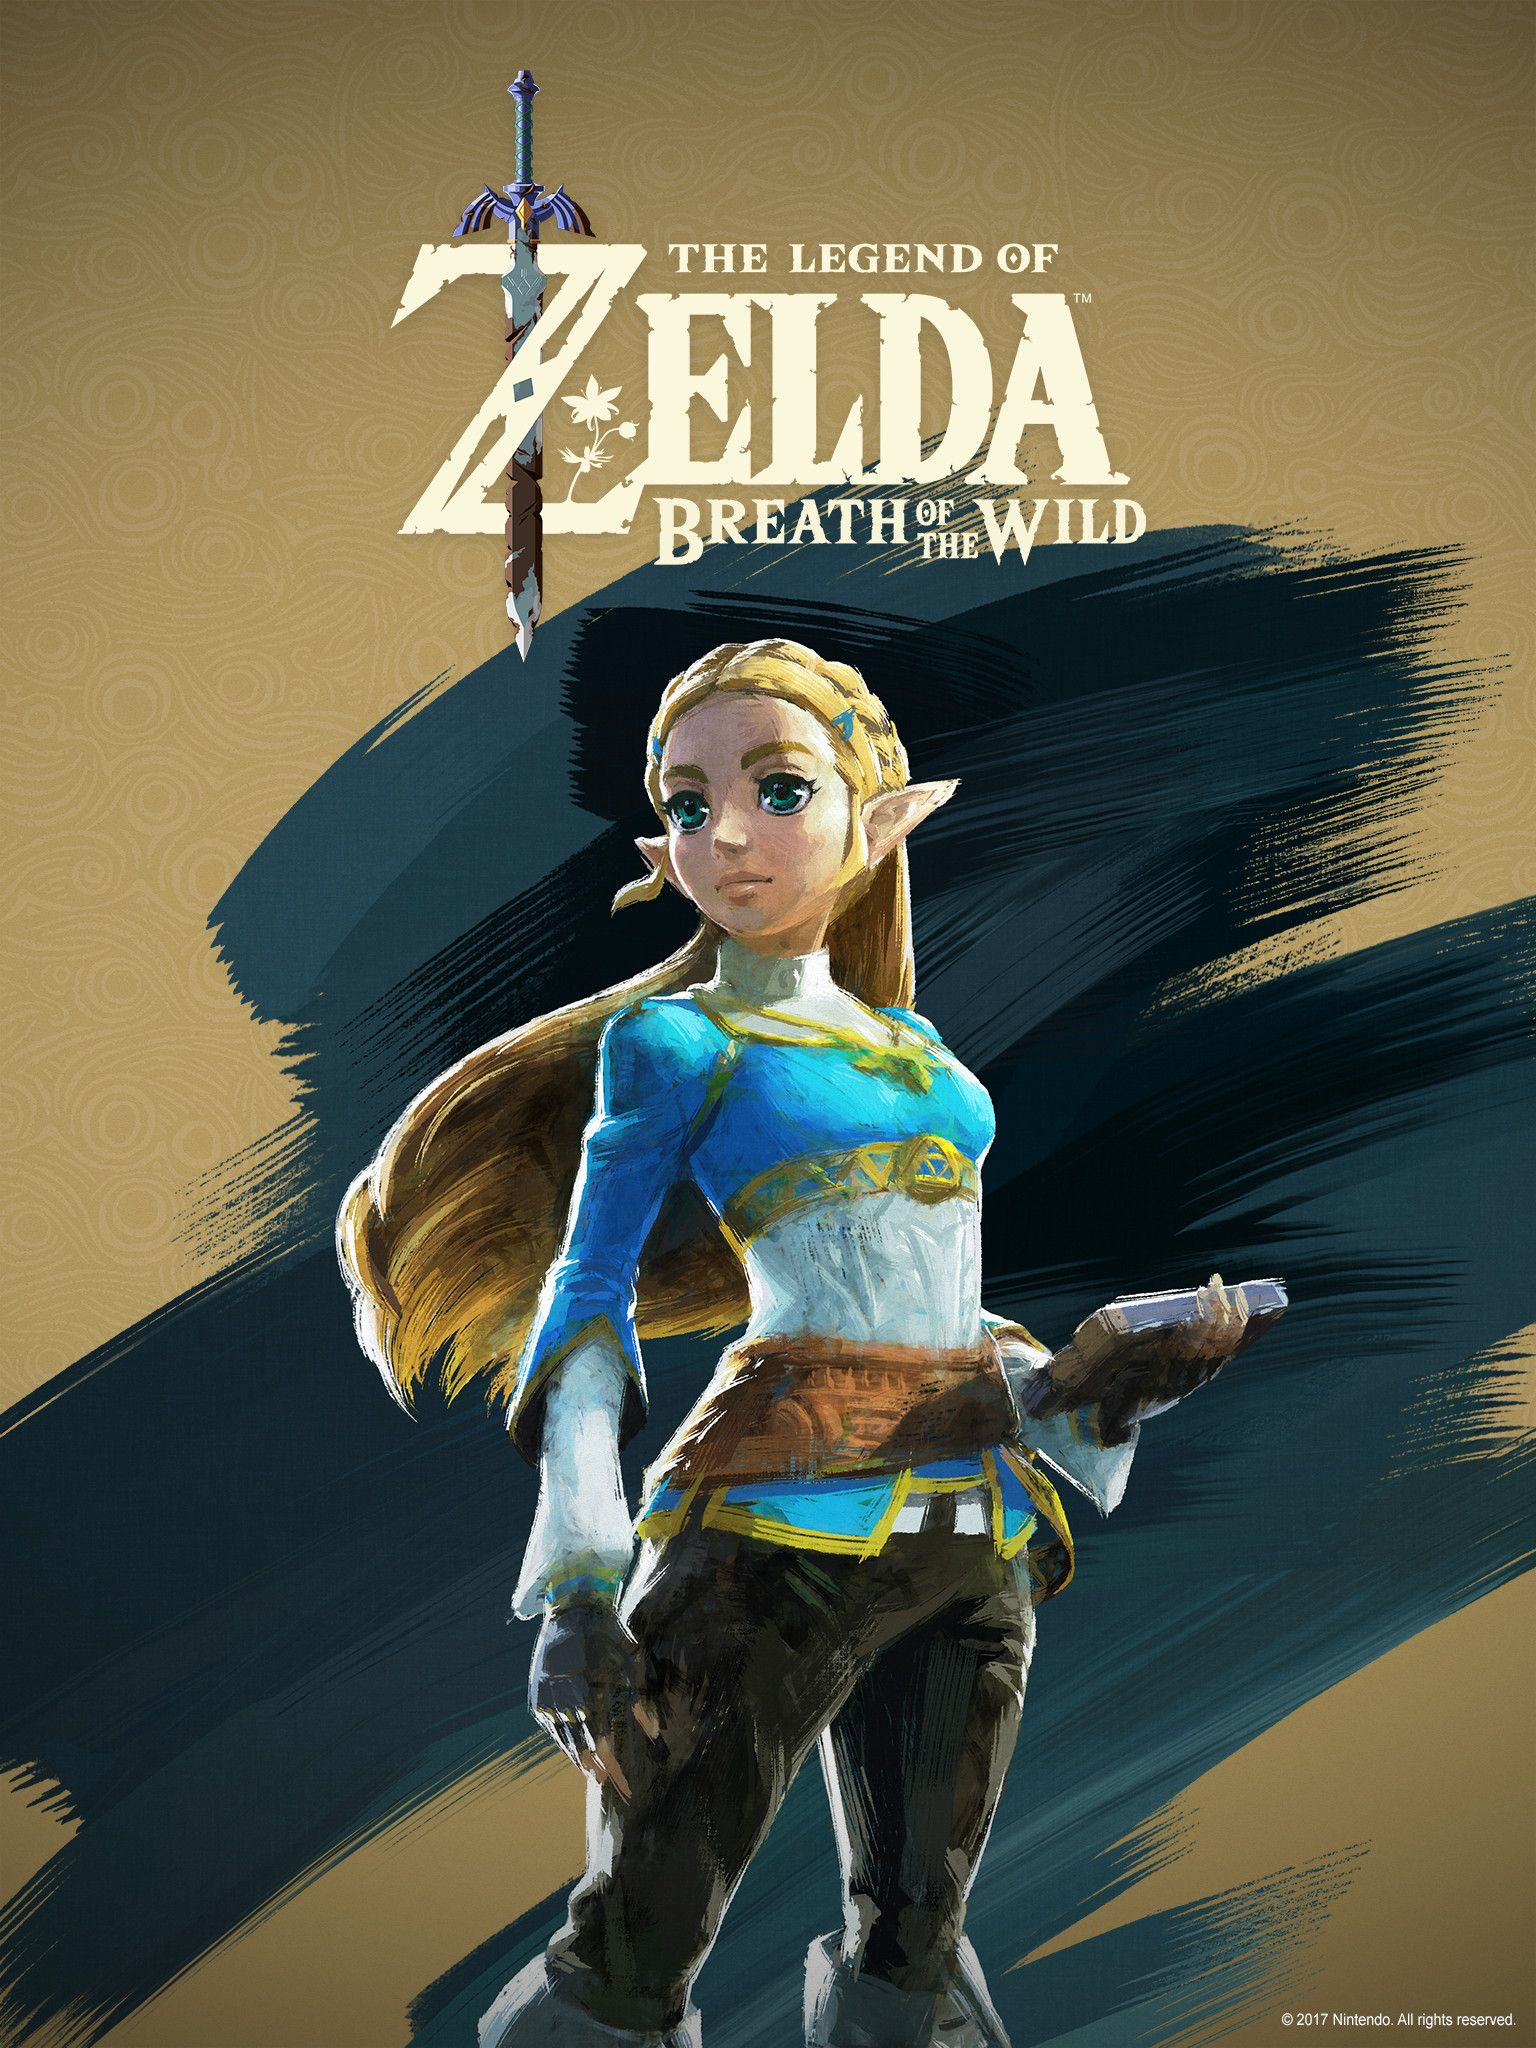 Botw Princess Zelda Zelda Wallpaper Iphonewallpaper Art Wallpaper Cover Art Art